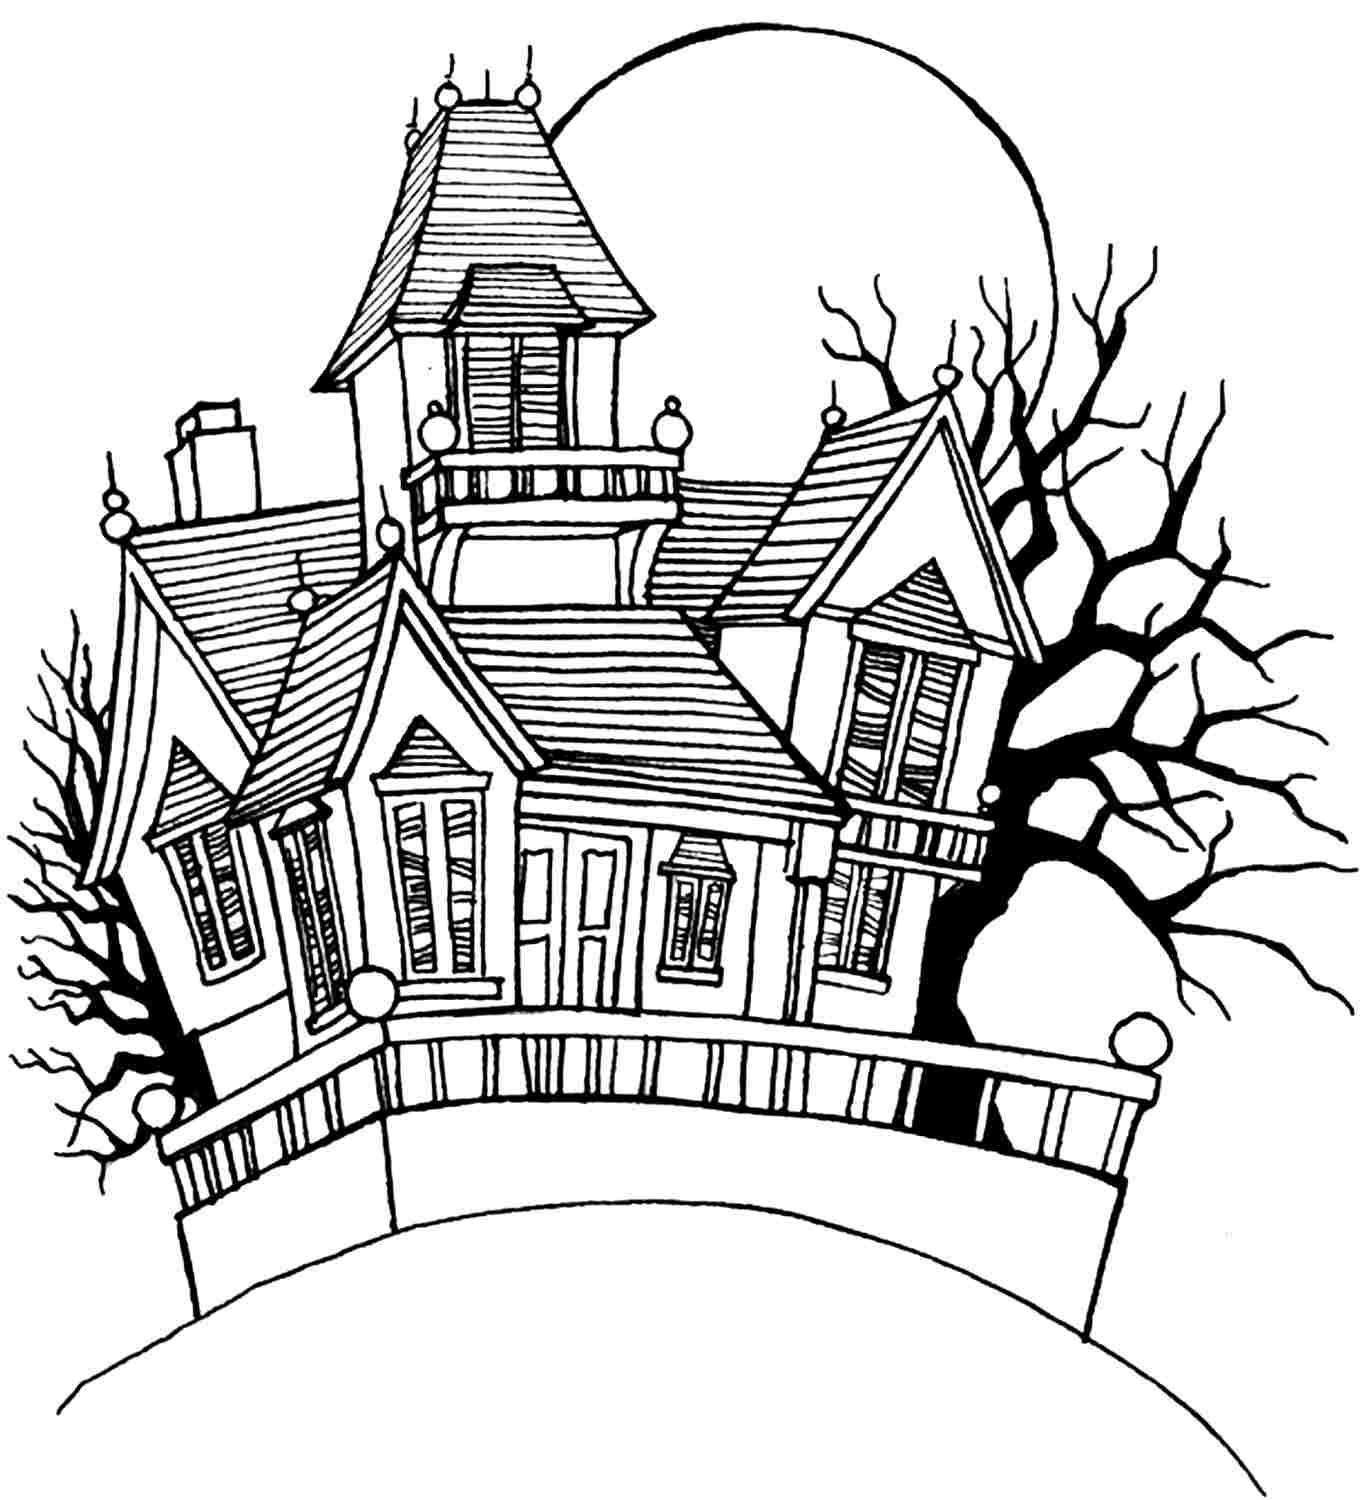 Halloween Spooky House Drawing.Spooky House Drawing Free Download Best Spooky House